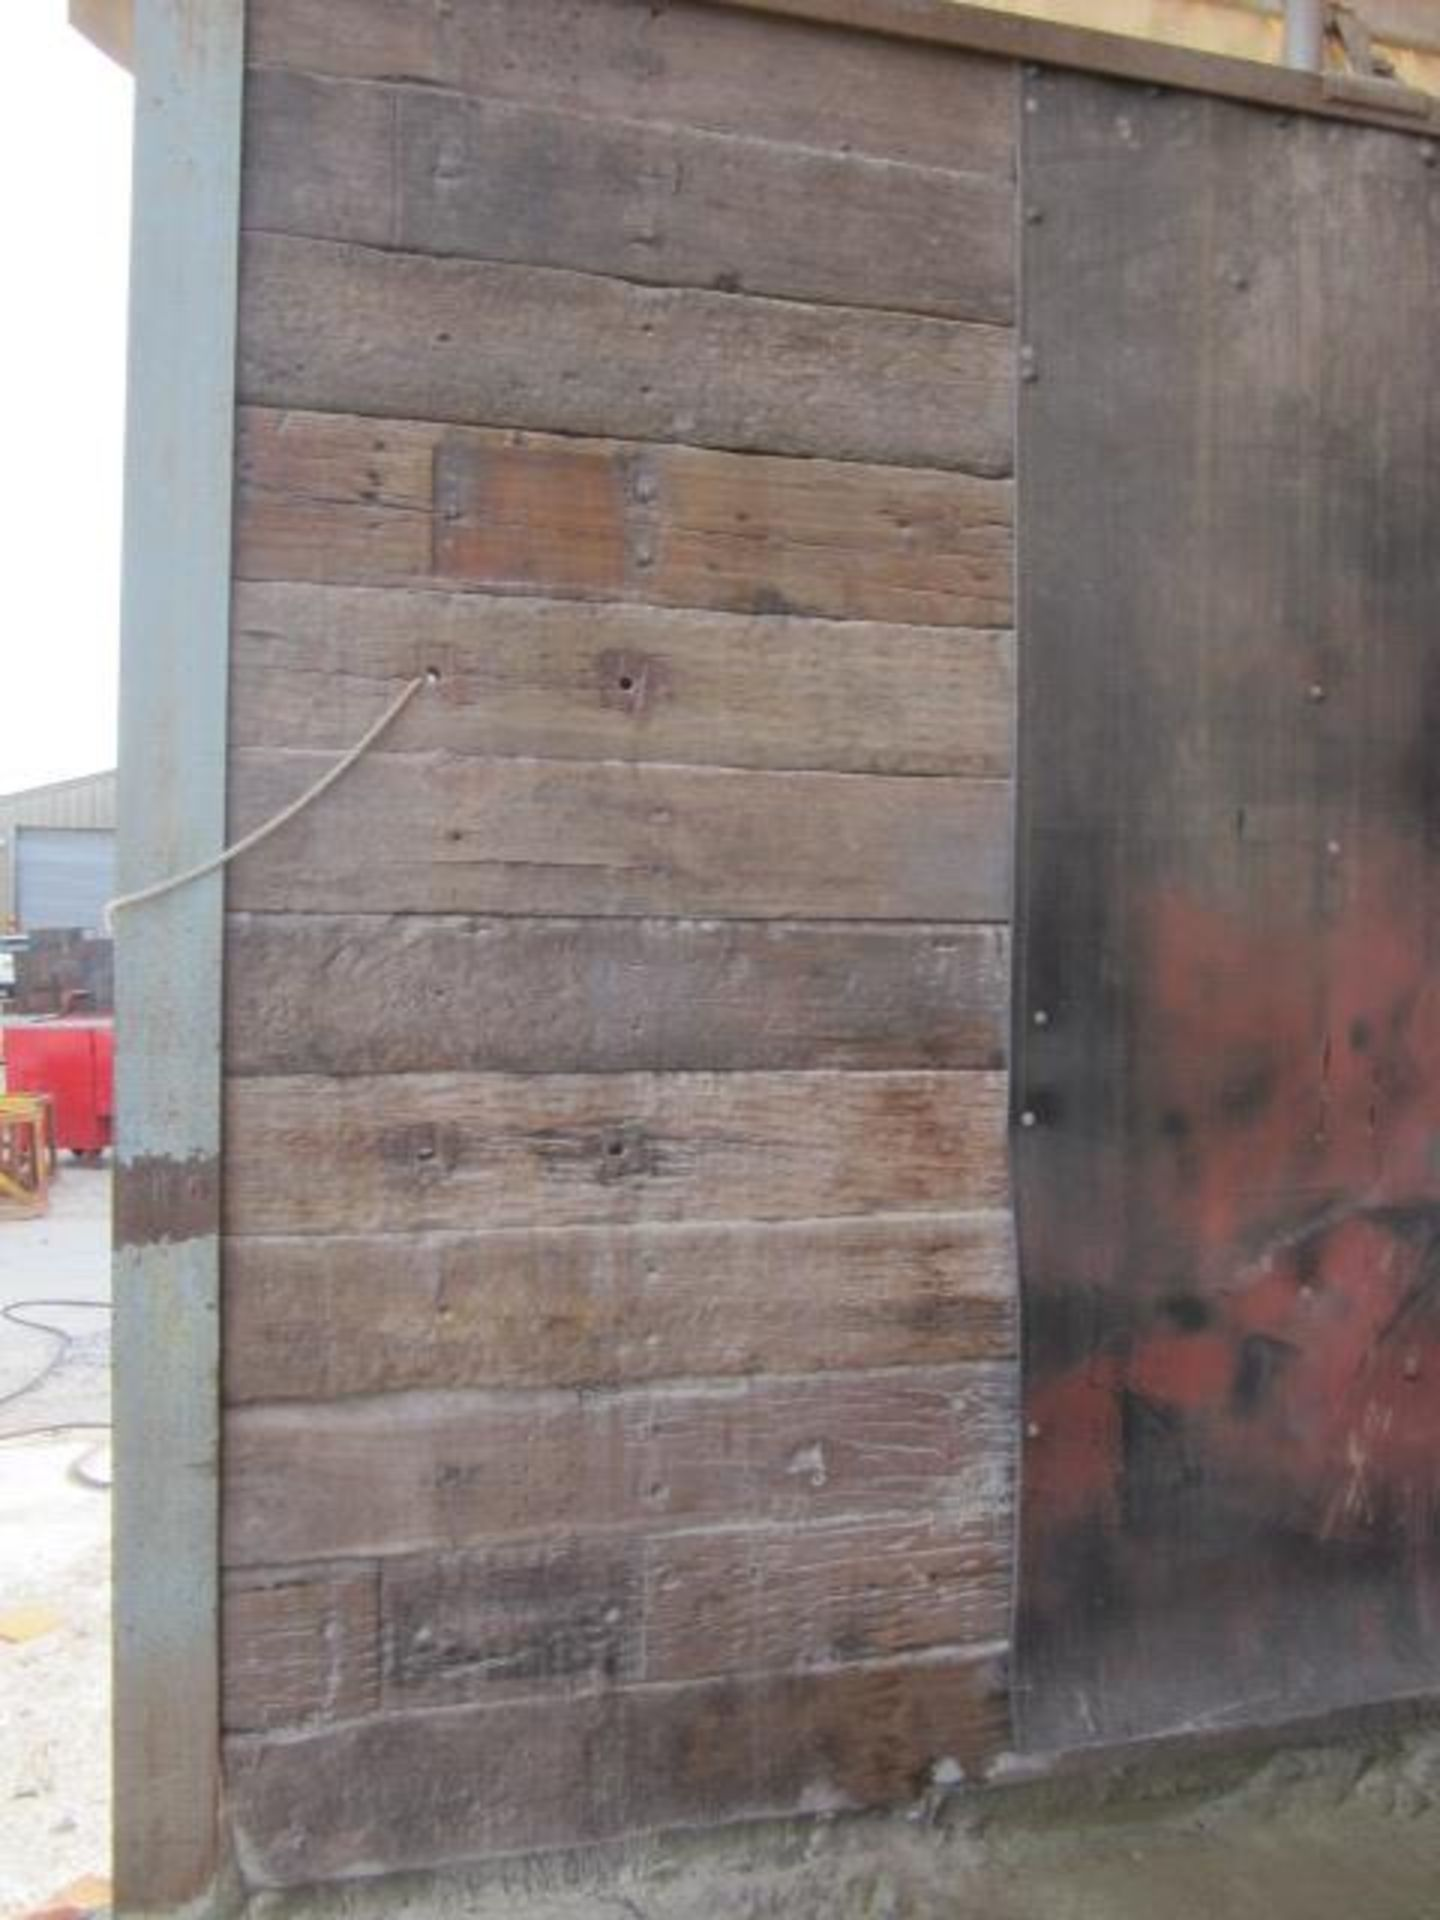 Approx. 80 railway sleepers mounted into wall section. A work Method Statement and Risk Assessment - Image 3 of 3